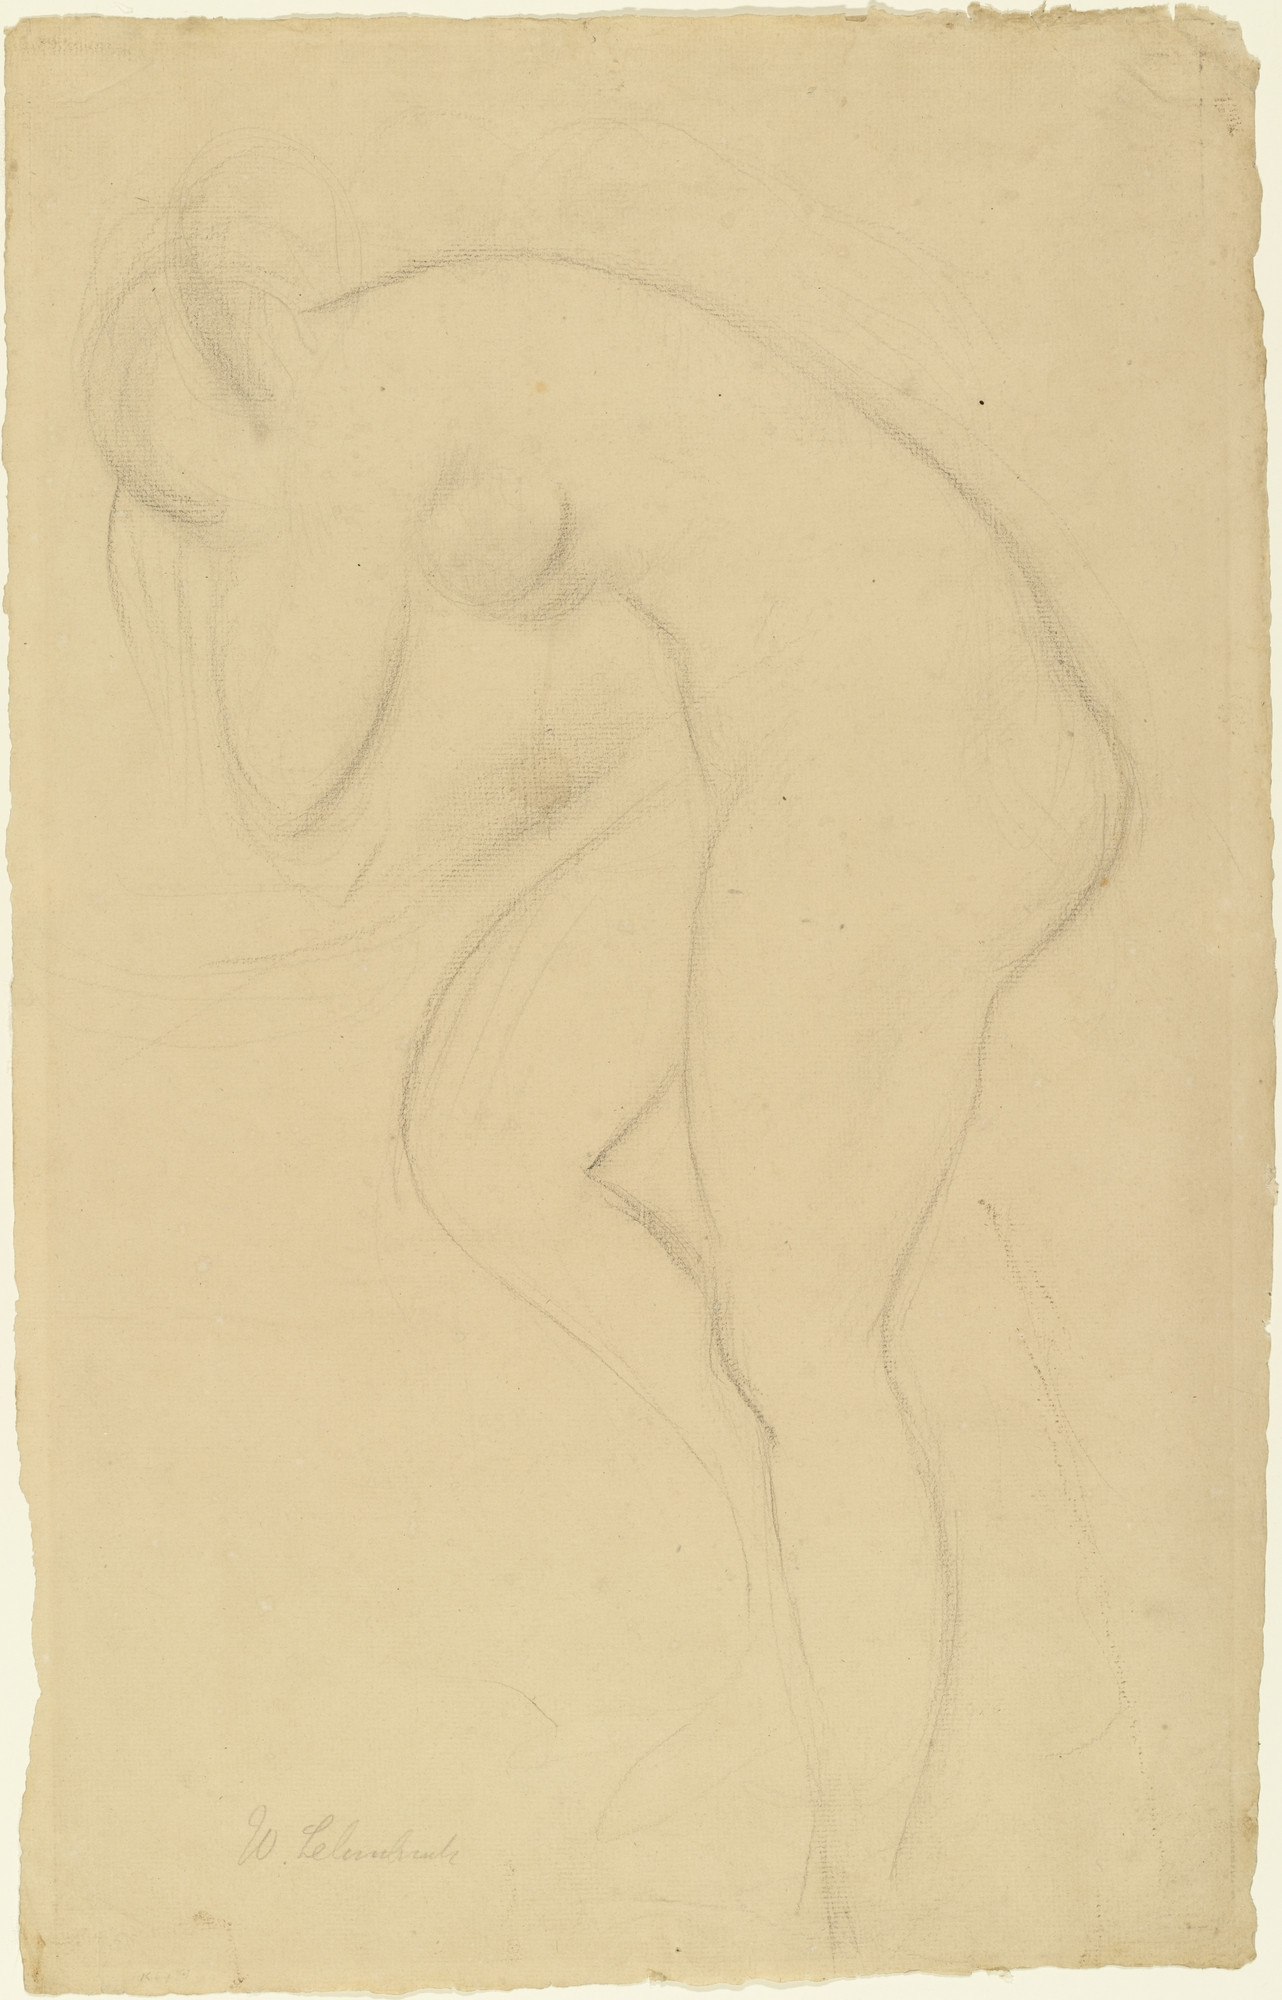 Wilhelm Lehmbruck. Study for Bather. (1913)